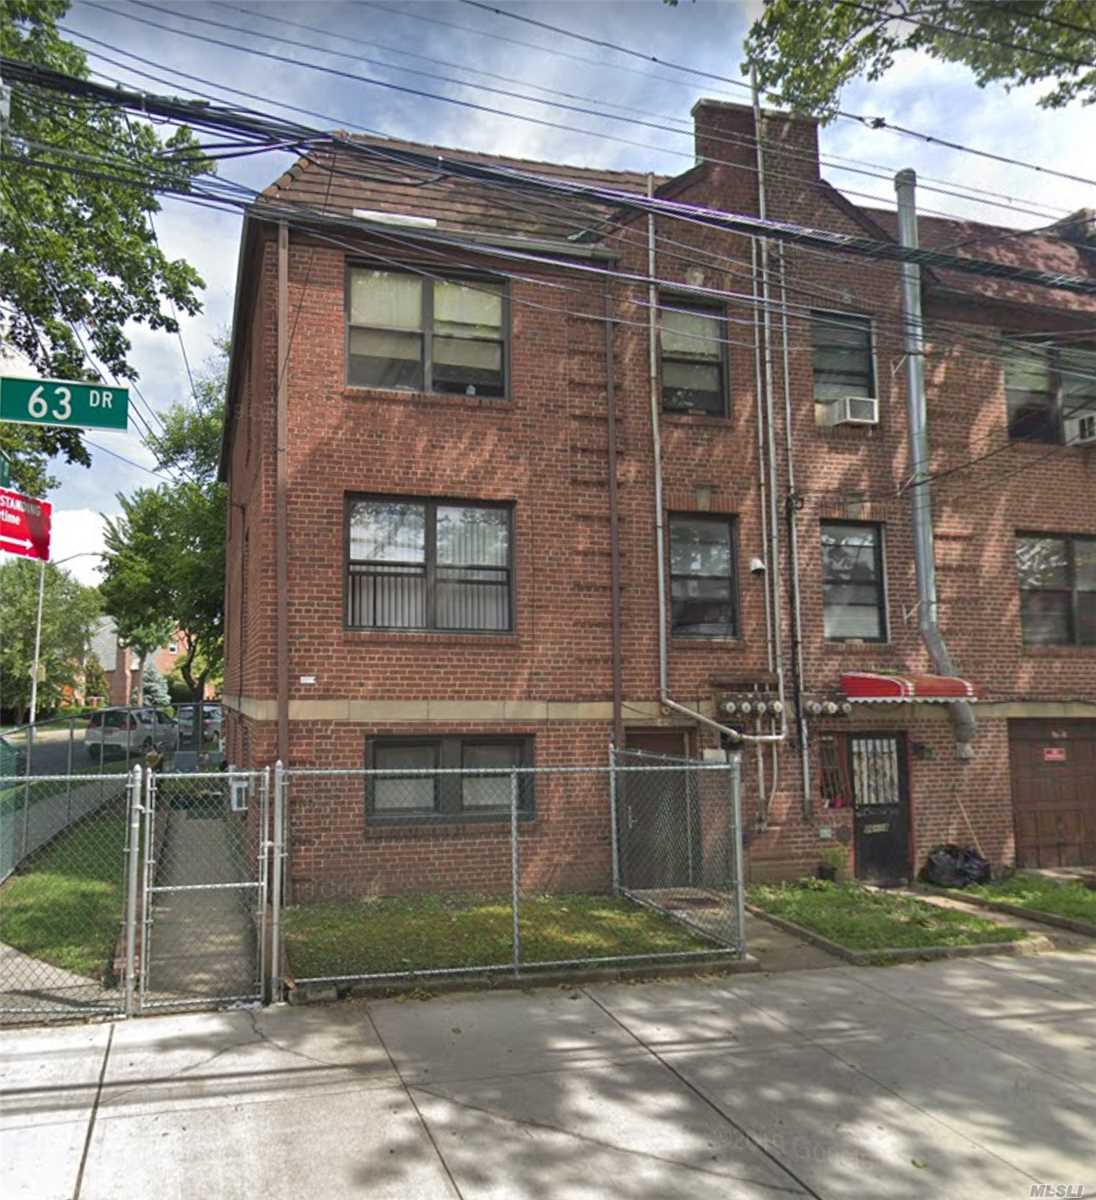 Residenziale in 86-20 63rd Dr, Rego Park, NY ,11374